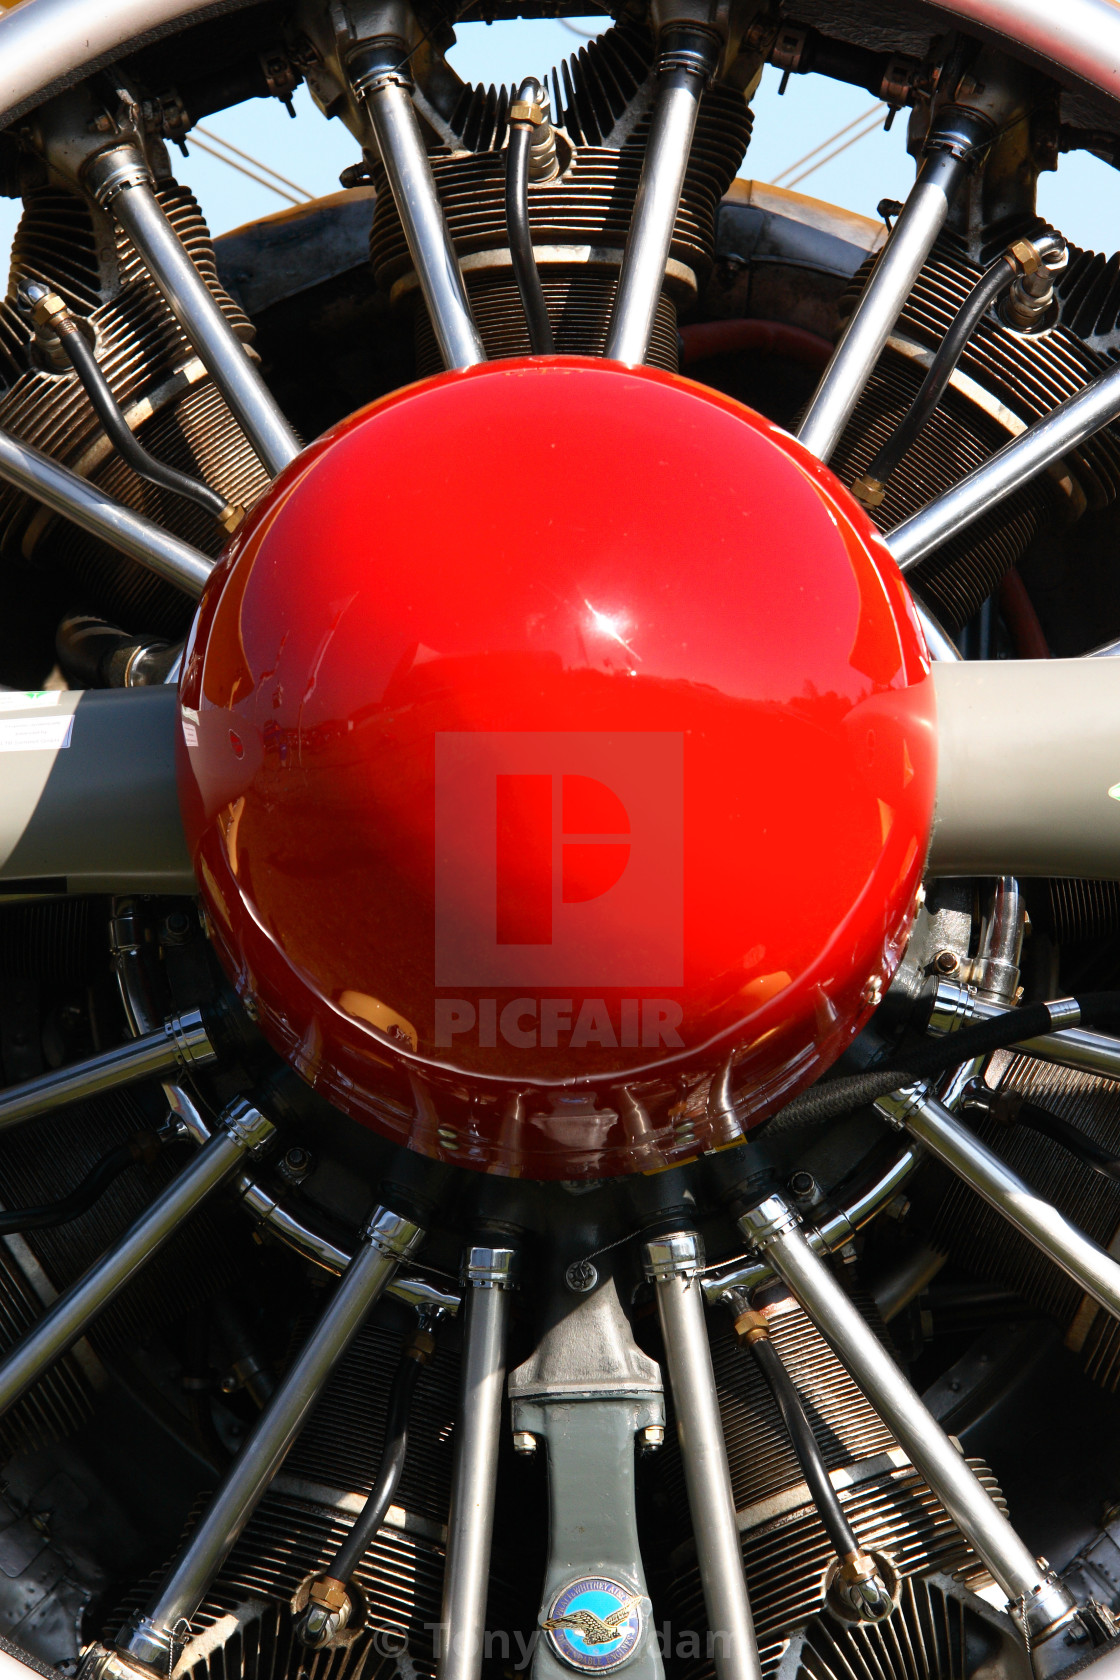 A close up of a radial engine at the Aero Friedrichshafen